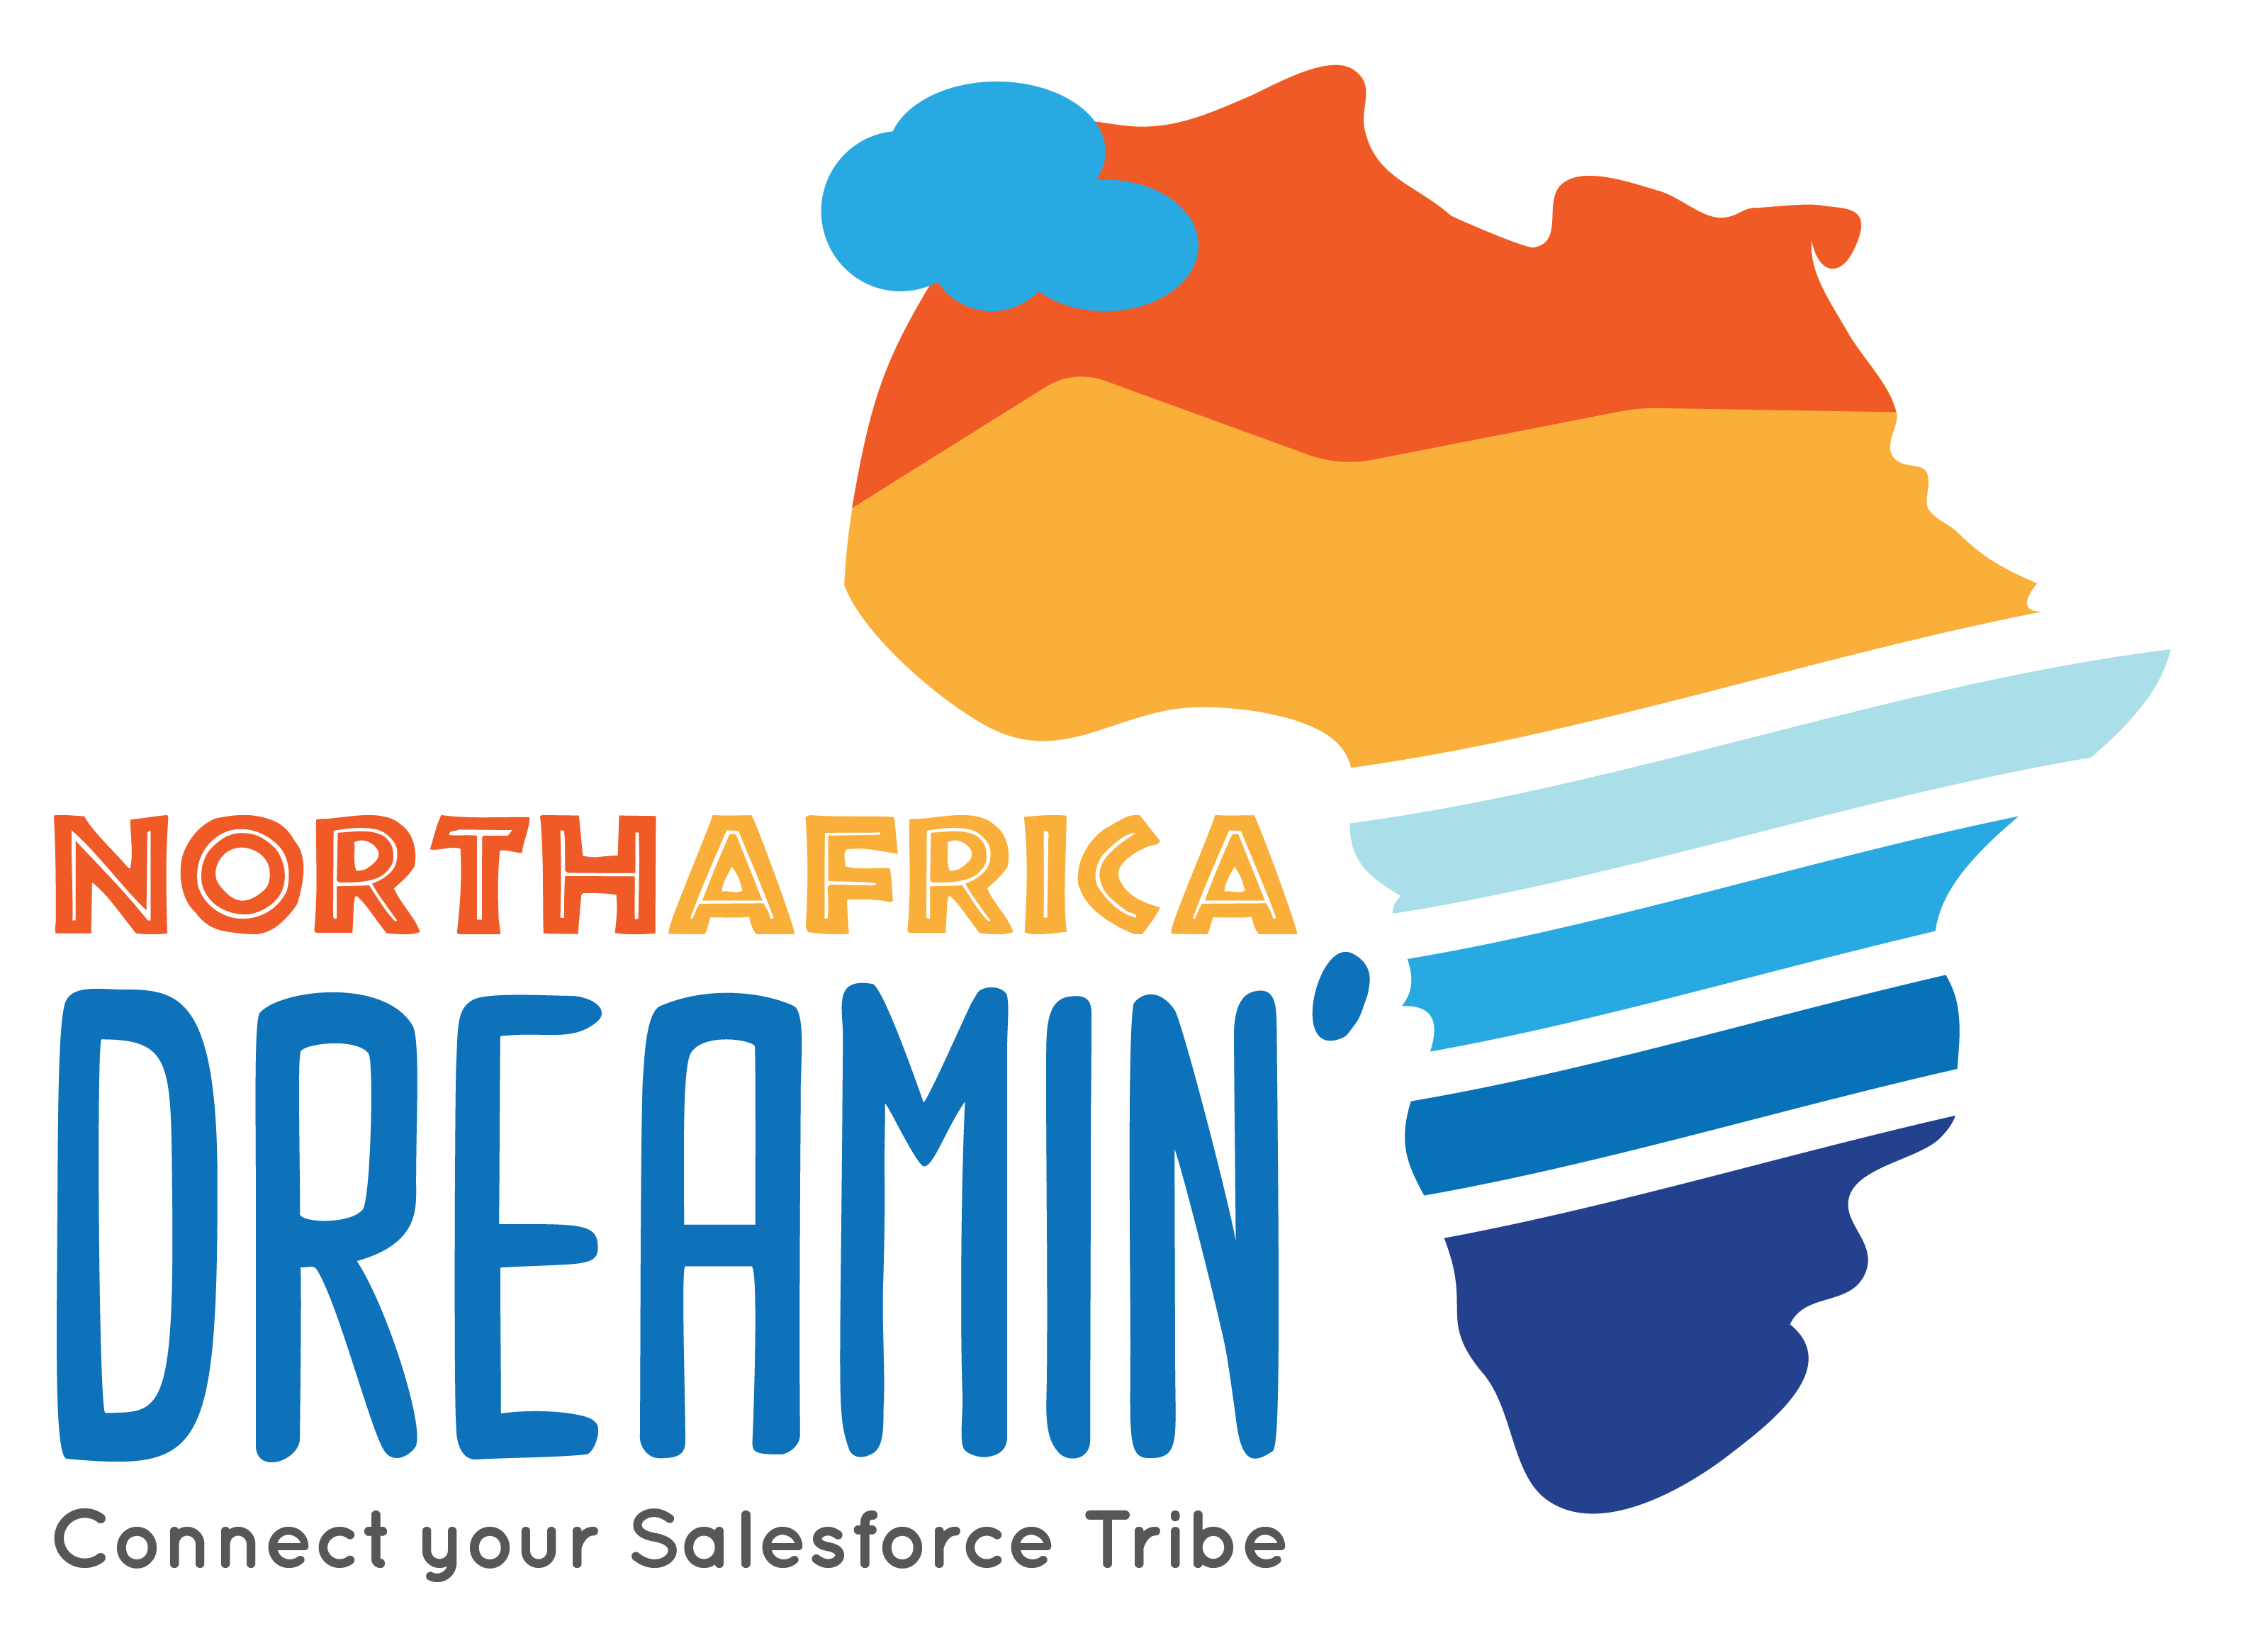 Logo North Africa Dreamin